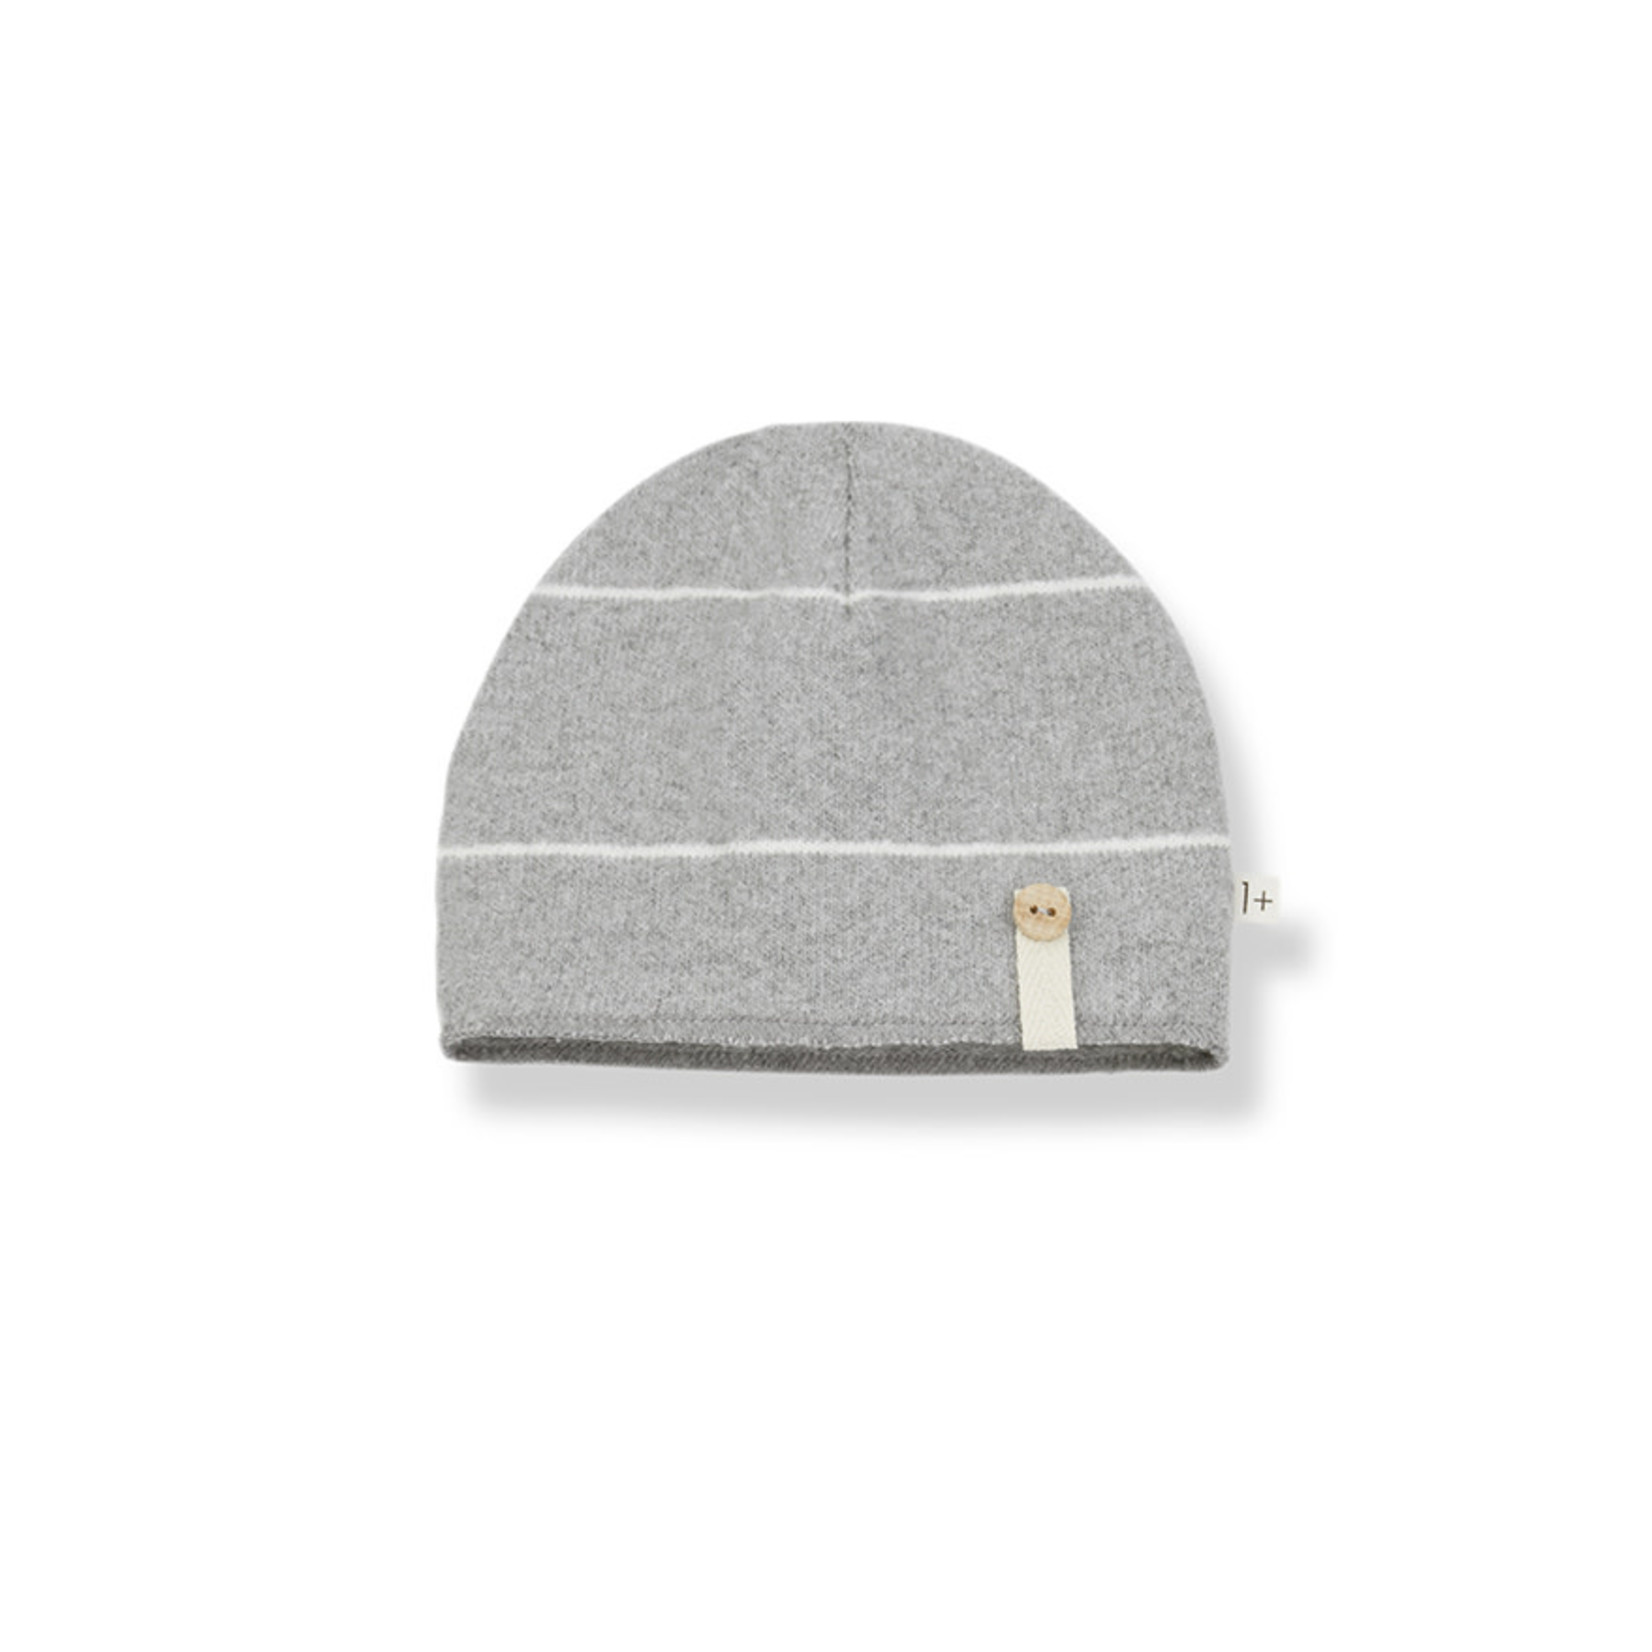 1+IN THE FAMILY 1+ IN THE FAMILY AW HONORE beanie